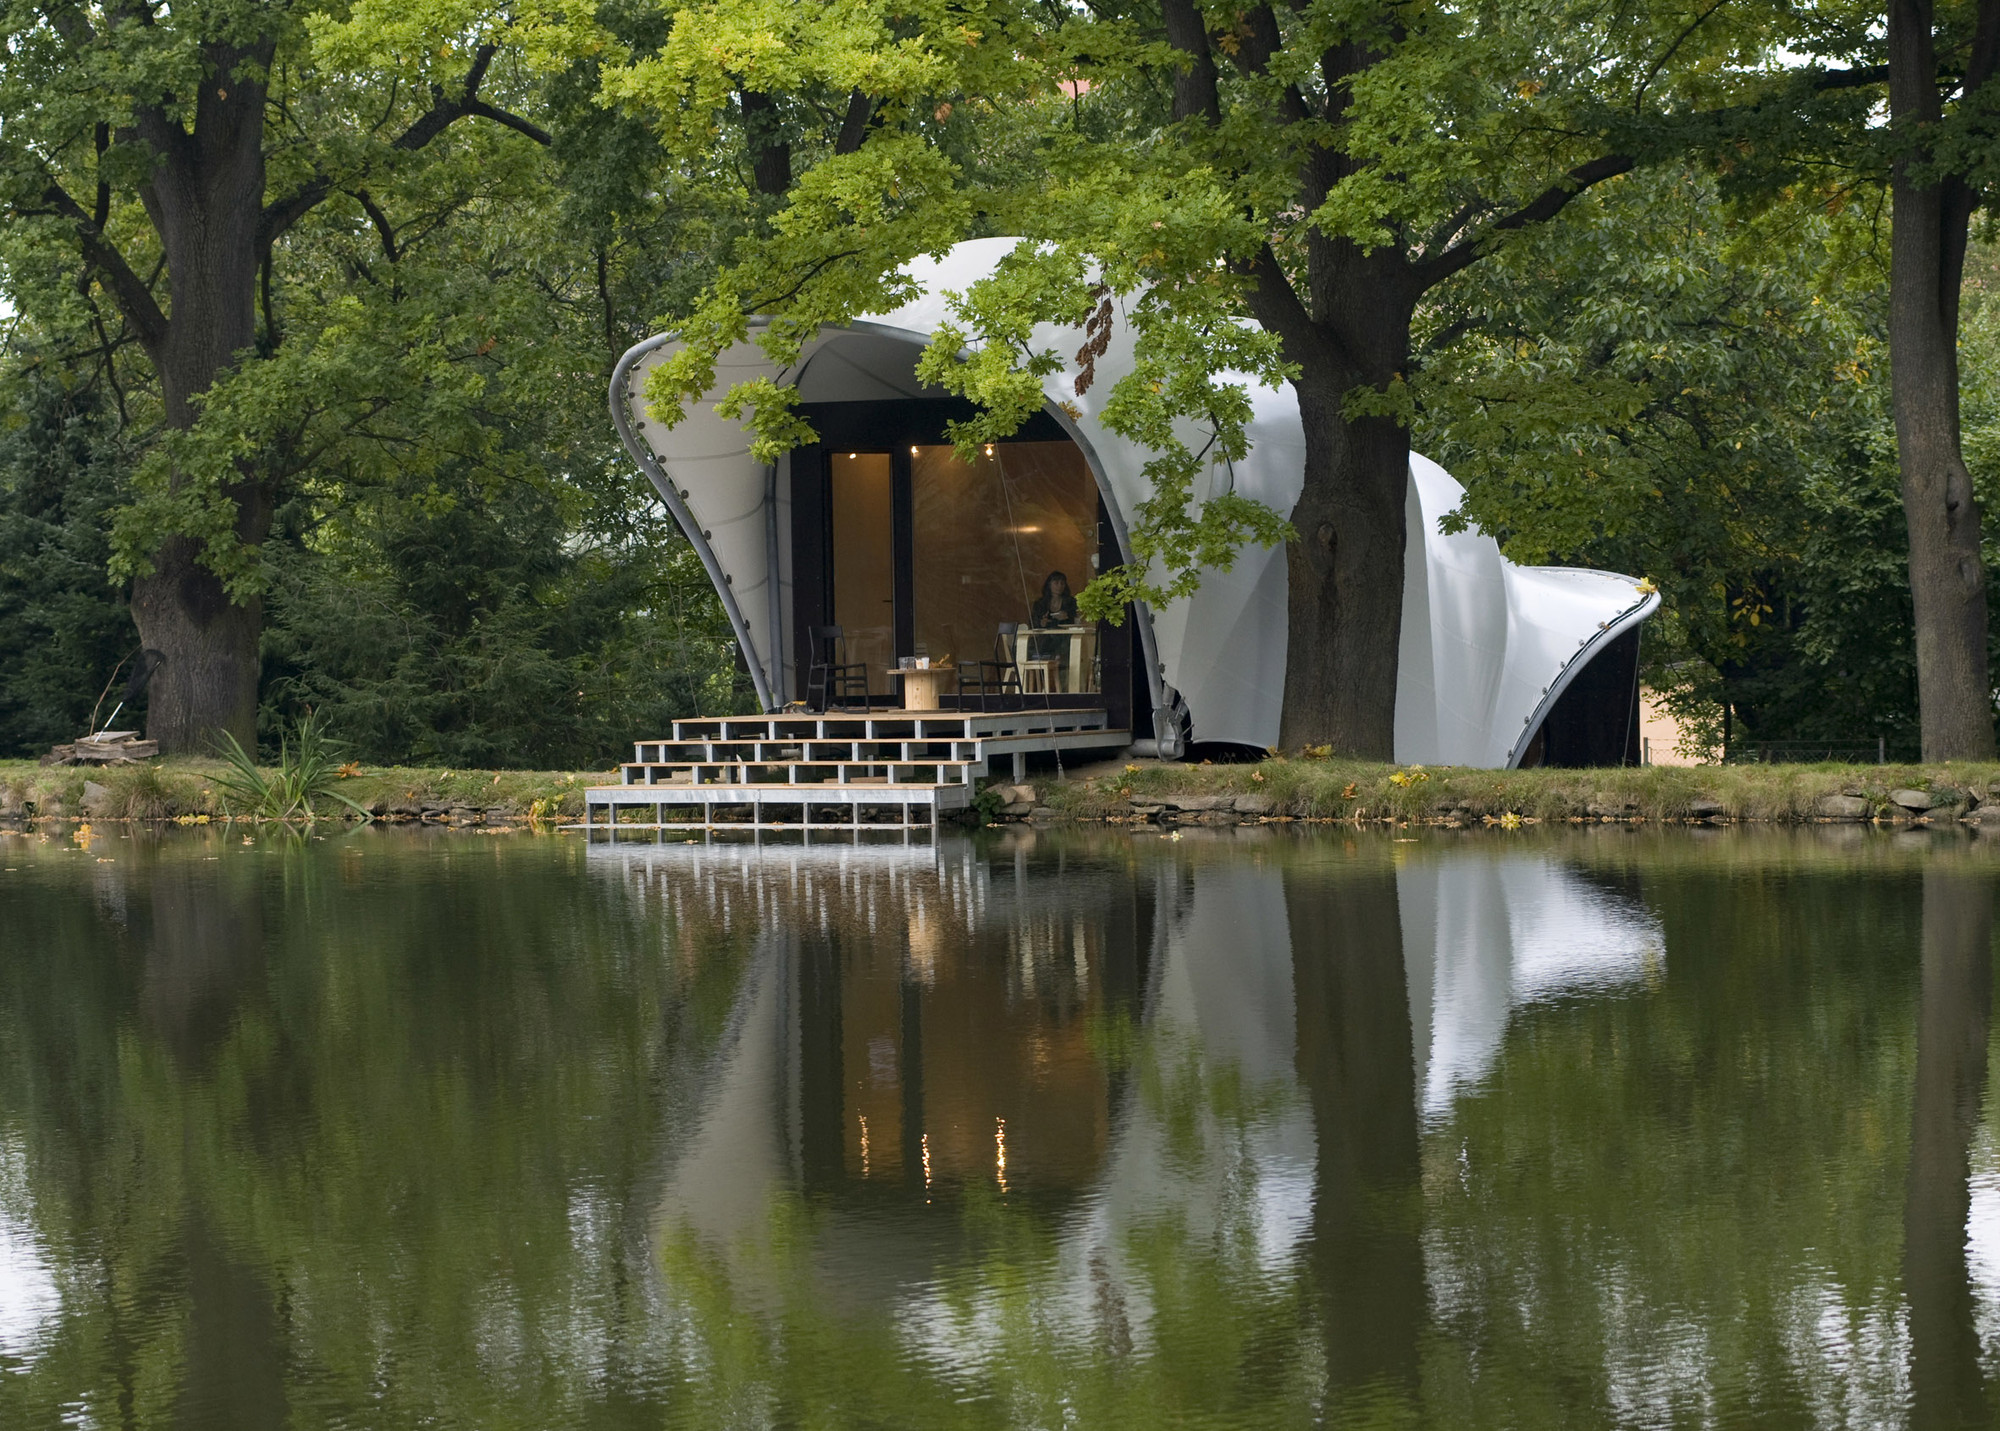 Garden house at the pond m s lko ok pla - Summer projects house garden ...